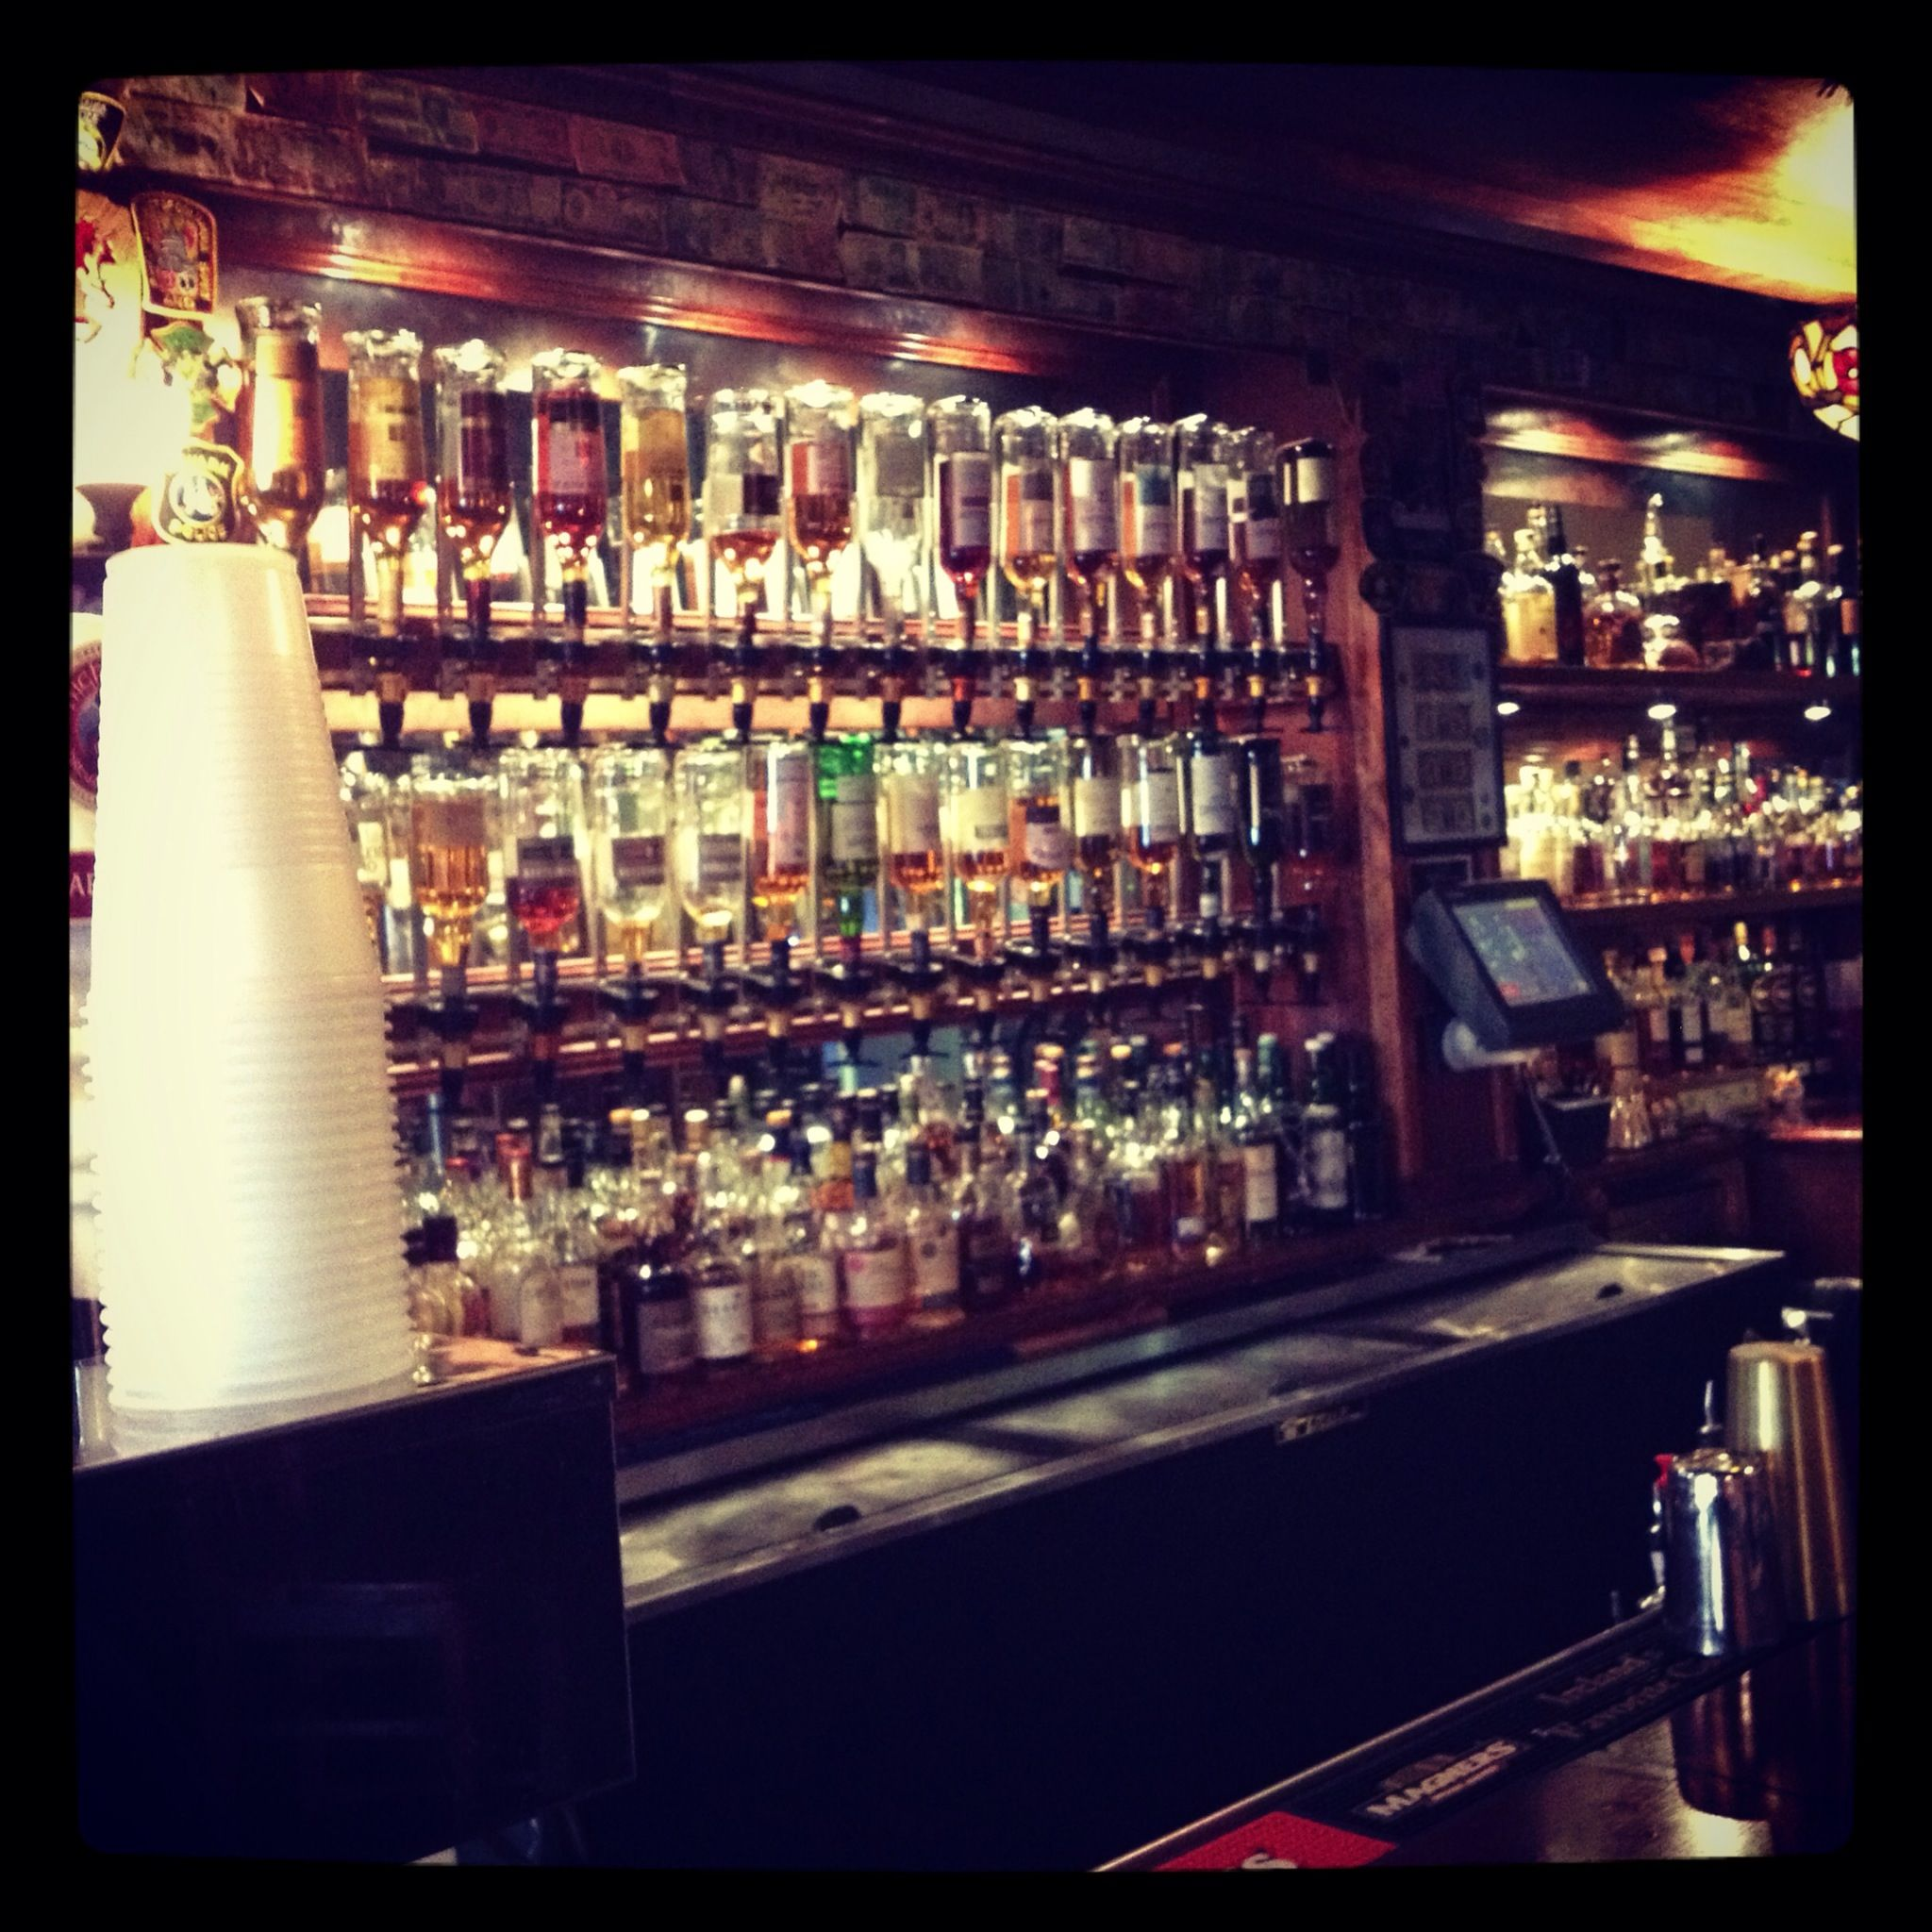 Second largest whiskey selection on east coast molly for Whiskey kitchen virginia beach